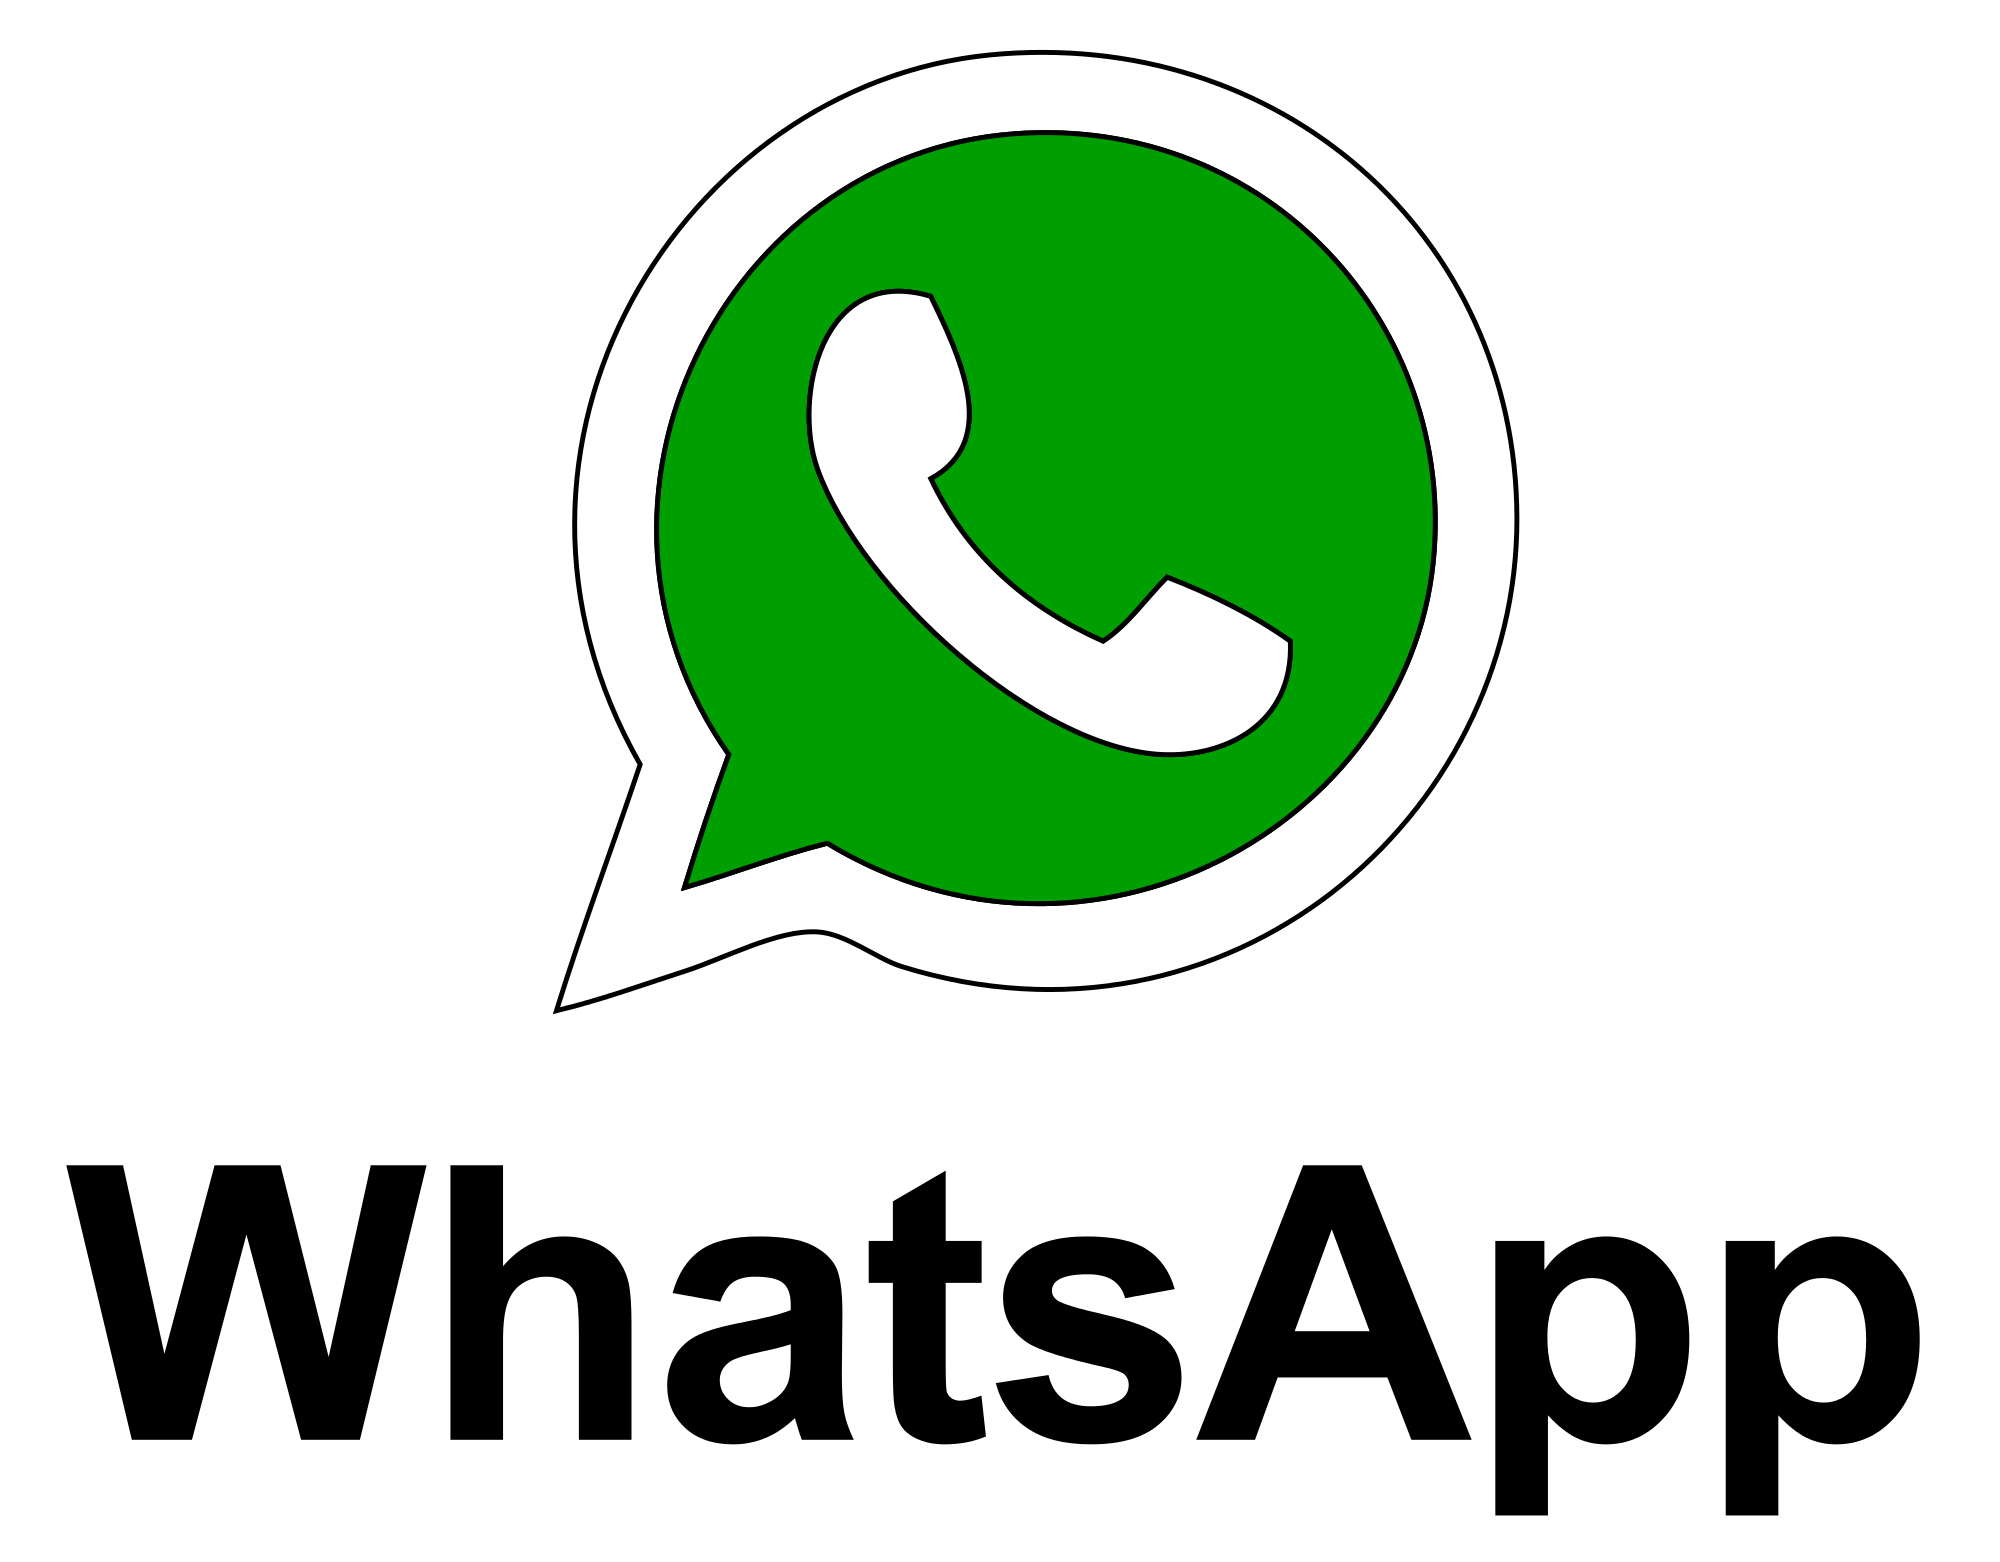 Government warns WhatsApp against misuse of its platform